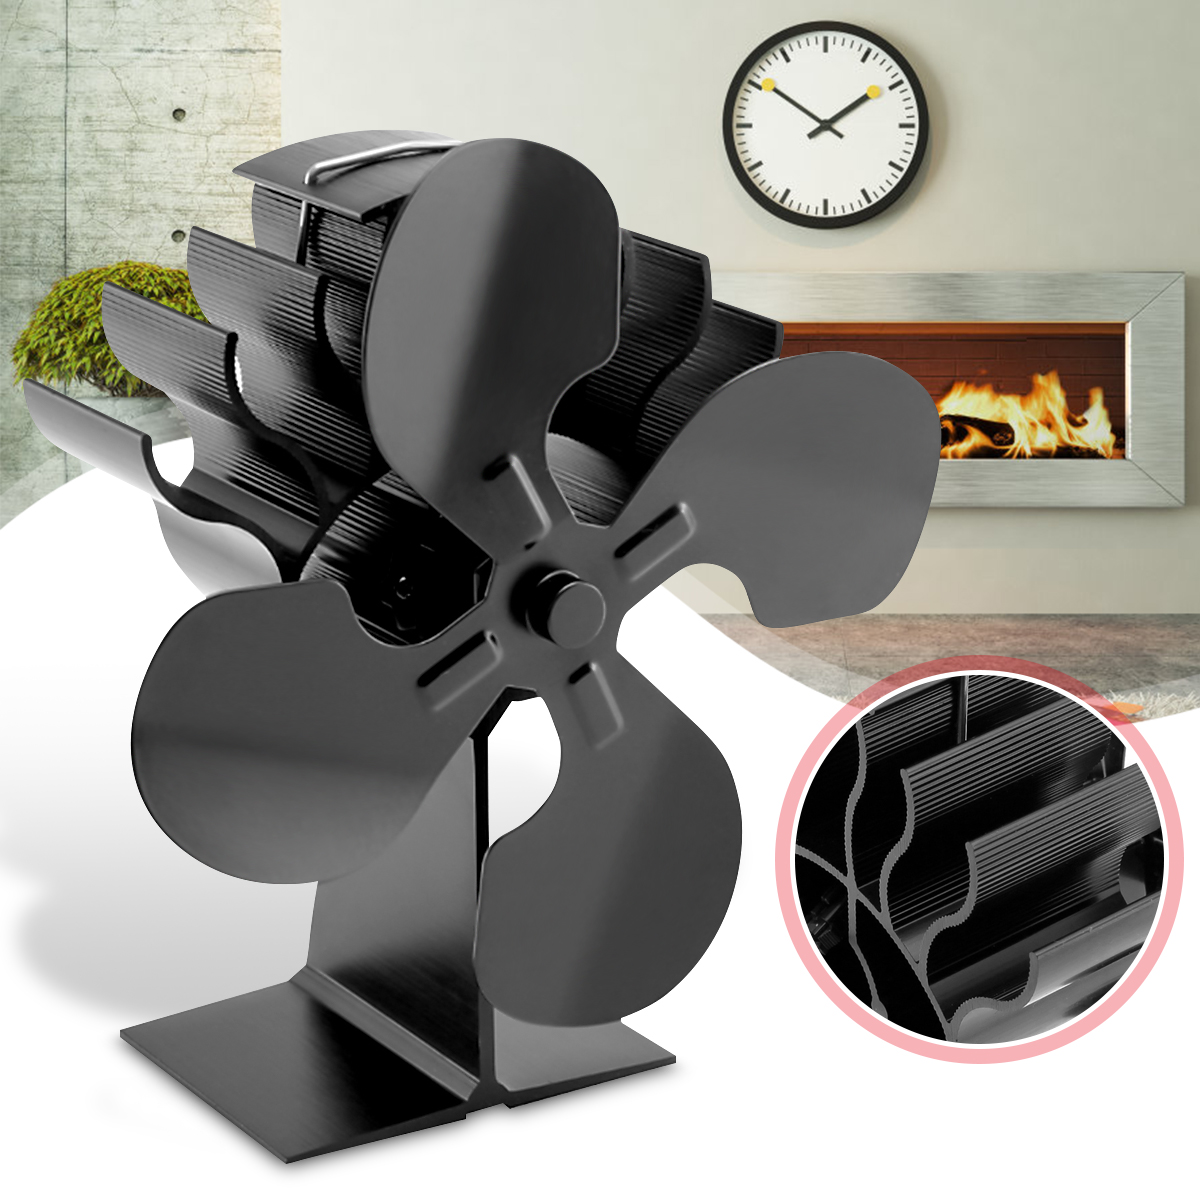 4 Blades Heat Powered Stove Fan Increase More Warm Air Than 2 Blade Stove Fan for Wood / Log Burner/Fireplace for Eco for MG цена и фото